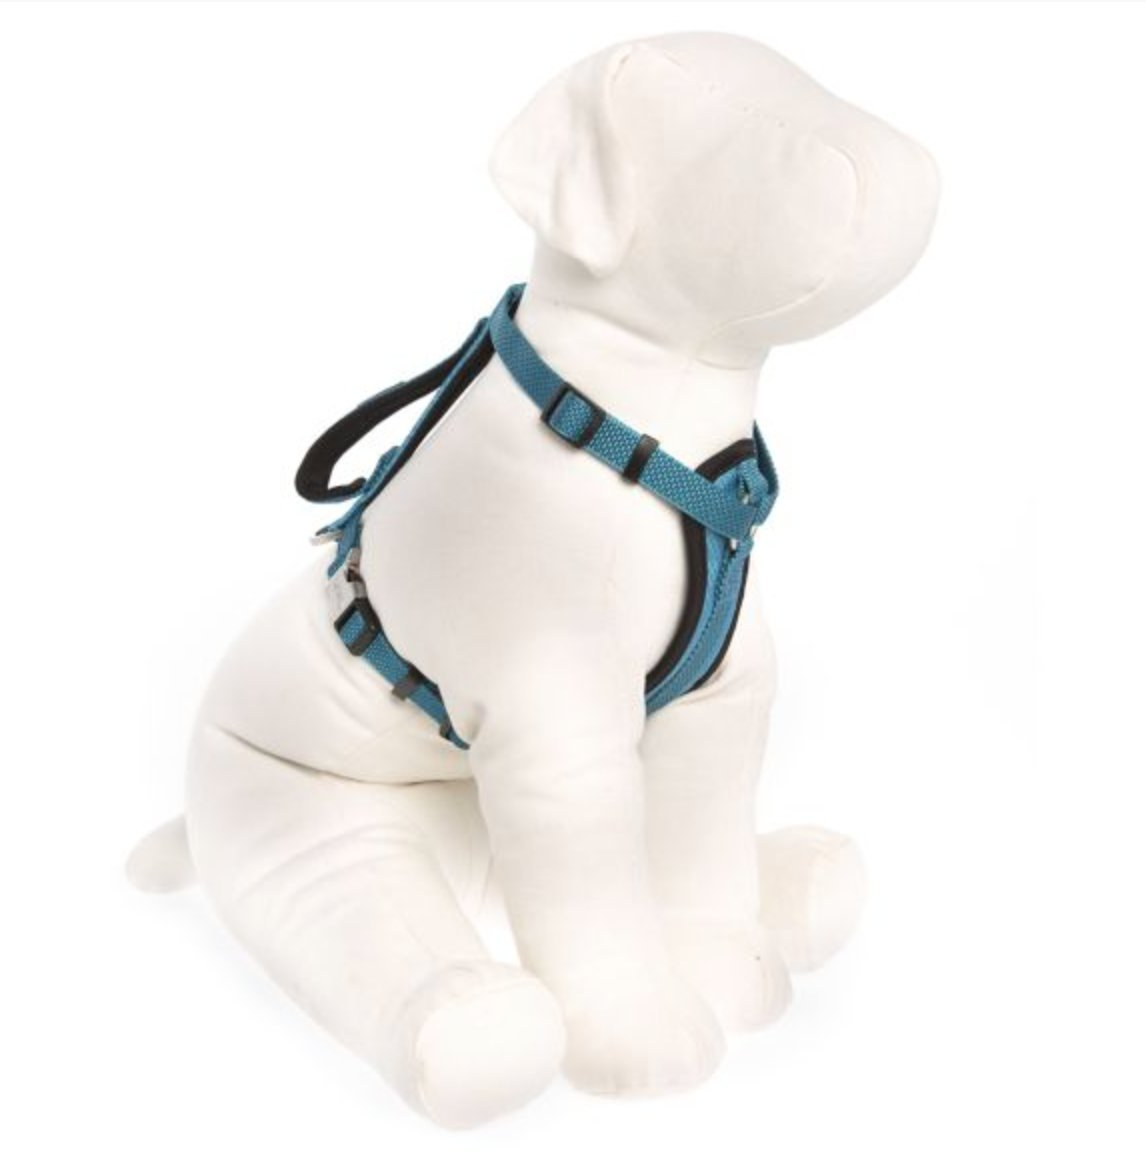 KONG Comfort Padded Chest Plate Dog Harness offered by Barker Brands Inc(Large, Blue).